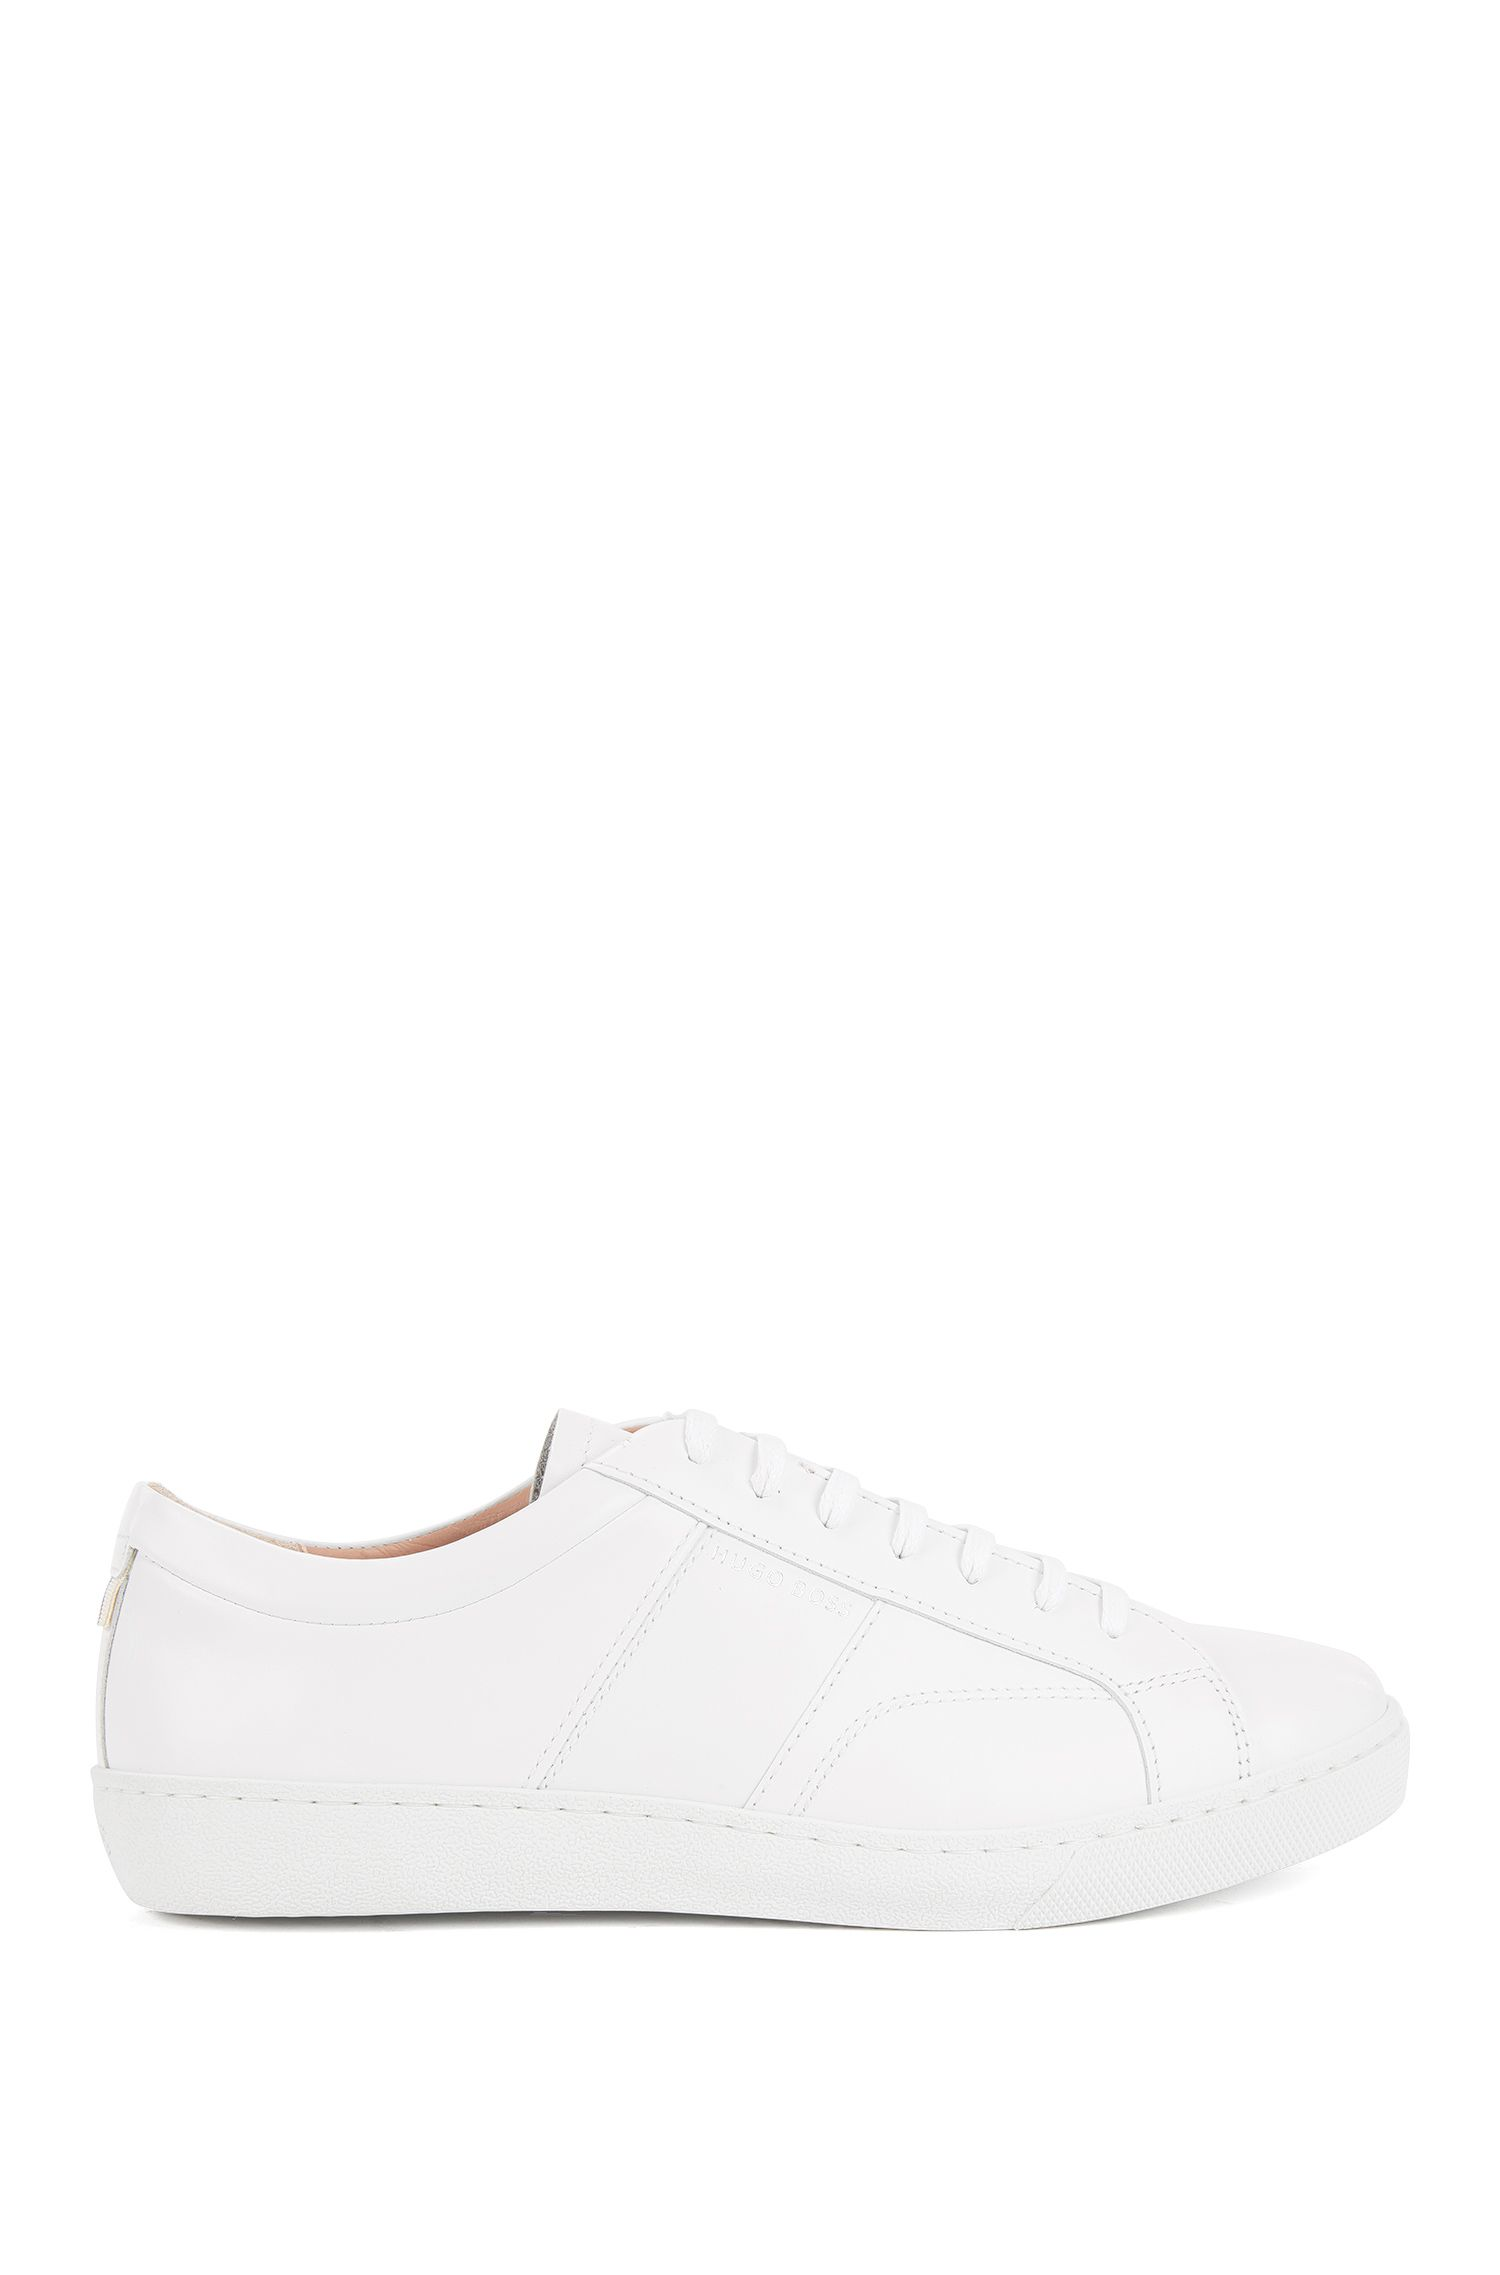 Low-top sneakers in Italian leather